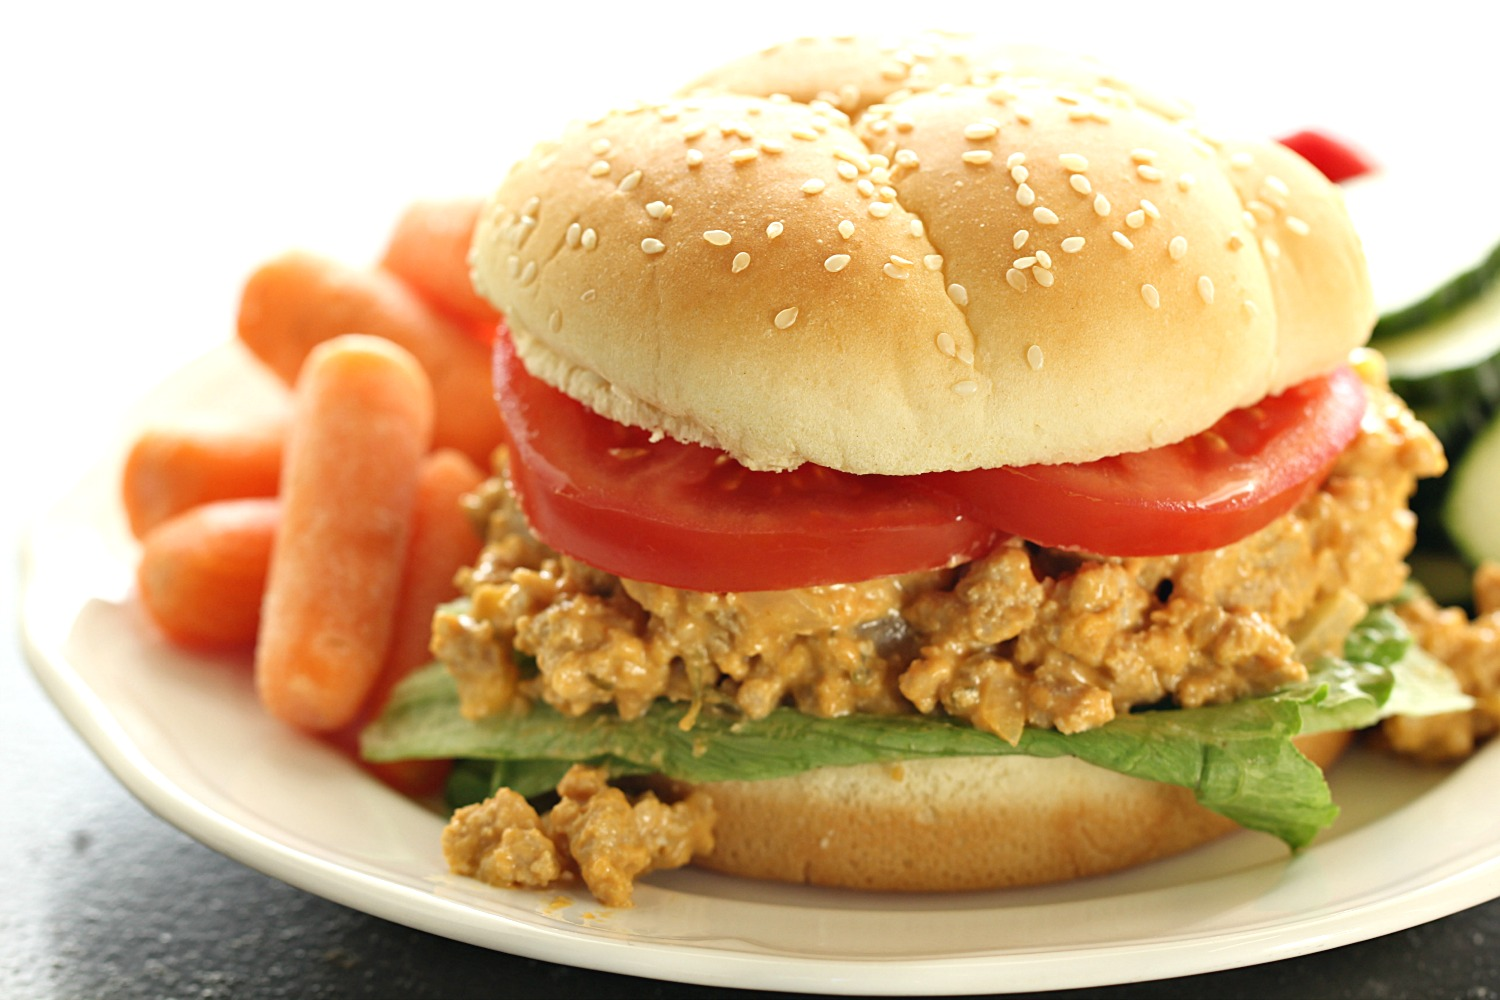 Slow Cooker Cheesy Turkey Burger Joes on a bun plated with vegetables